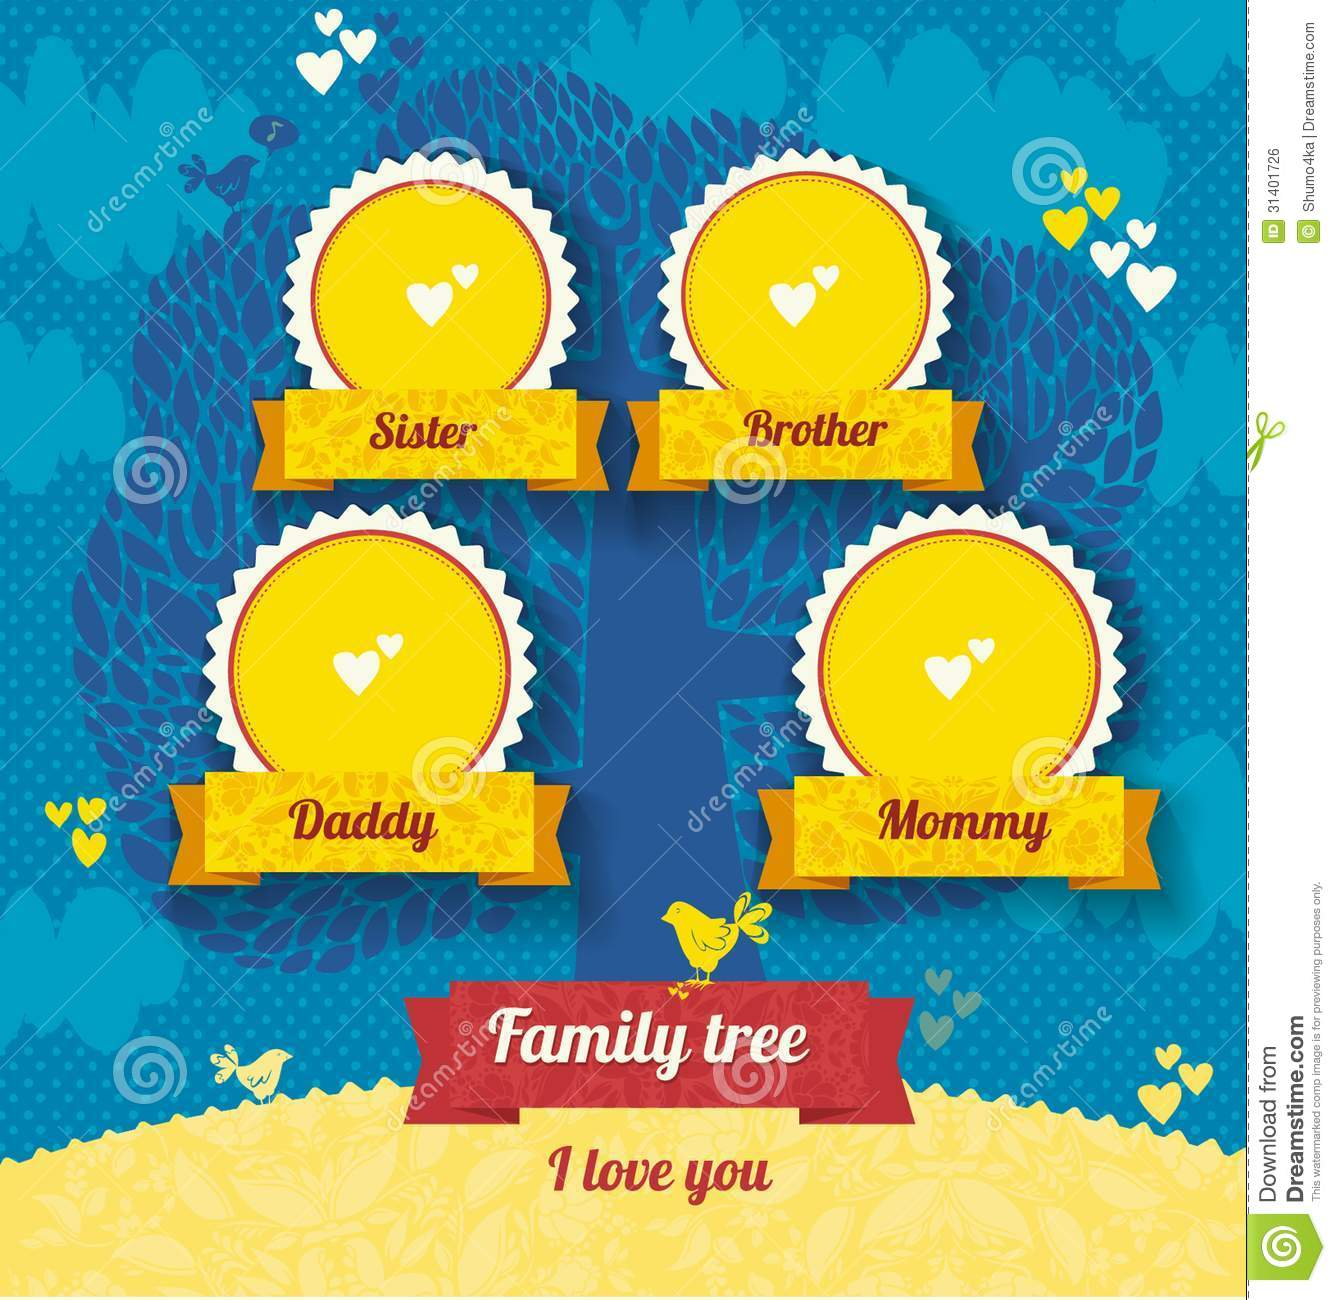 vector template for family tree royalty free stock image free family tree clipart images free family history clipart